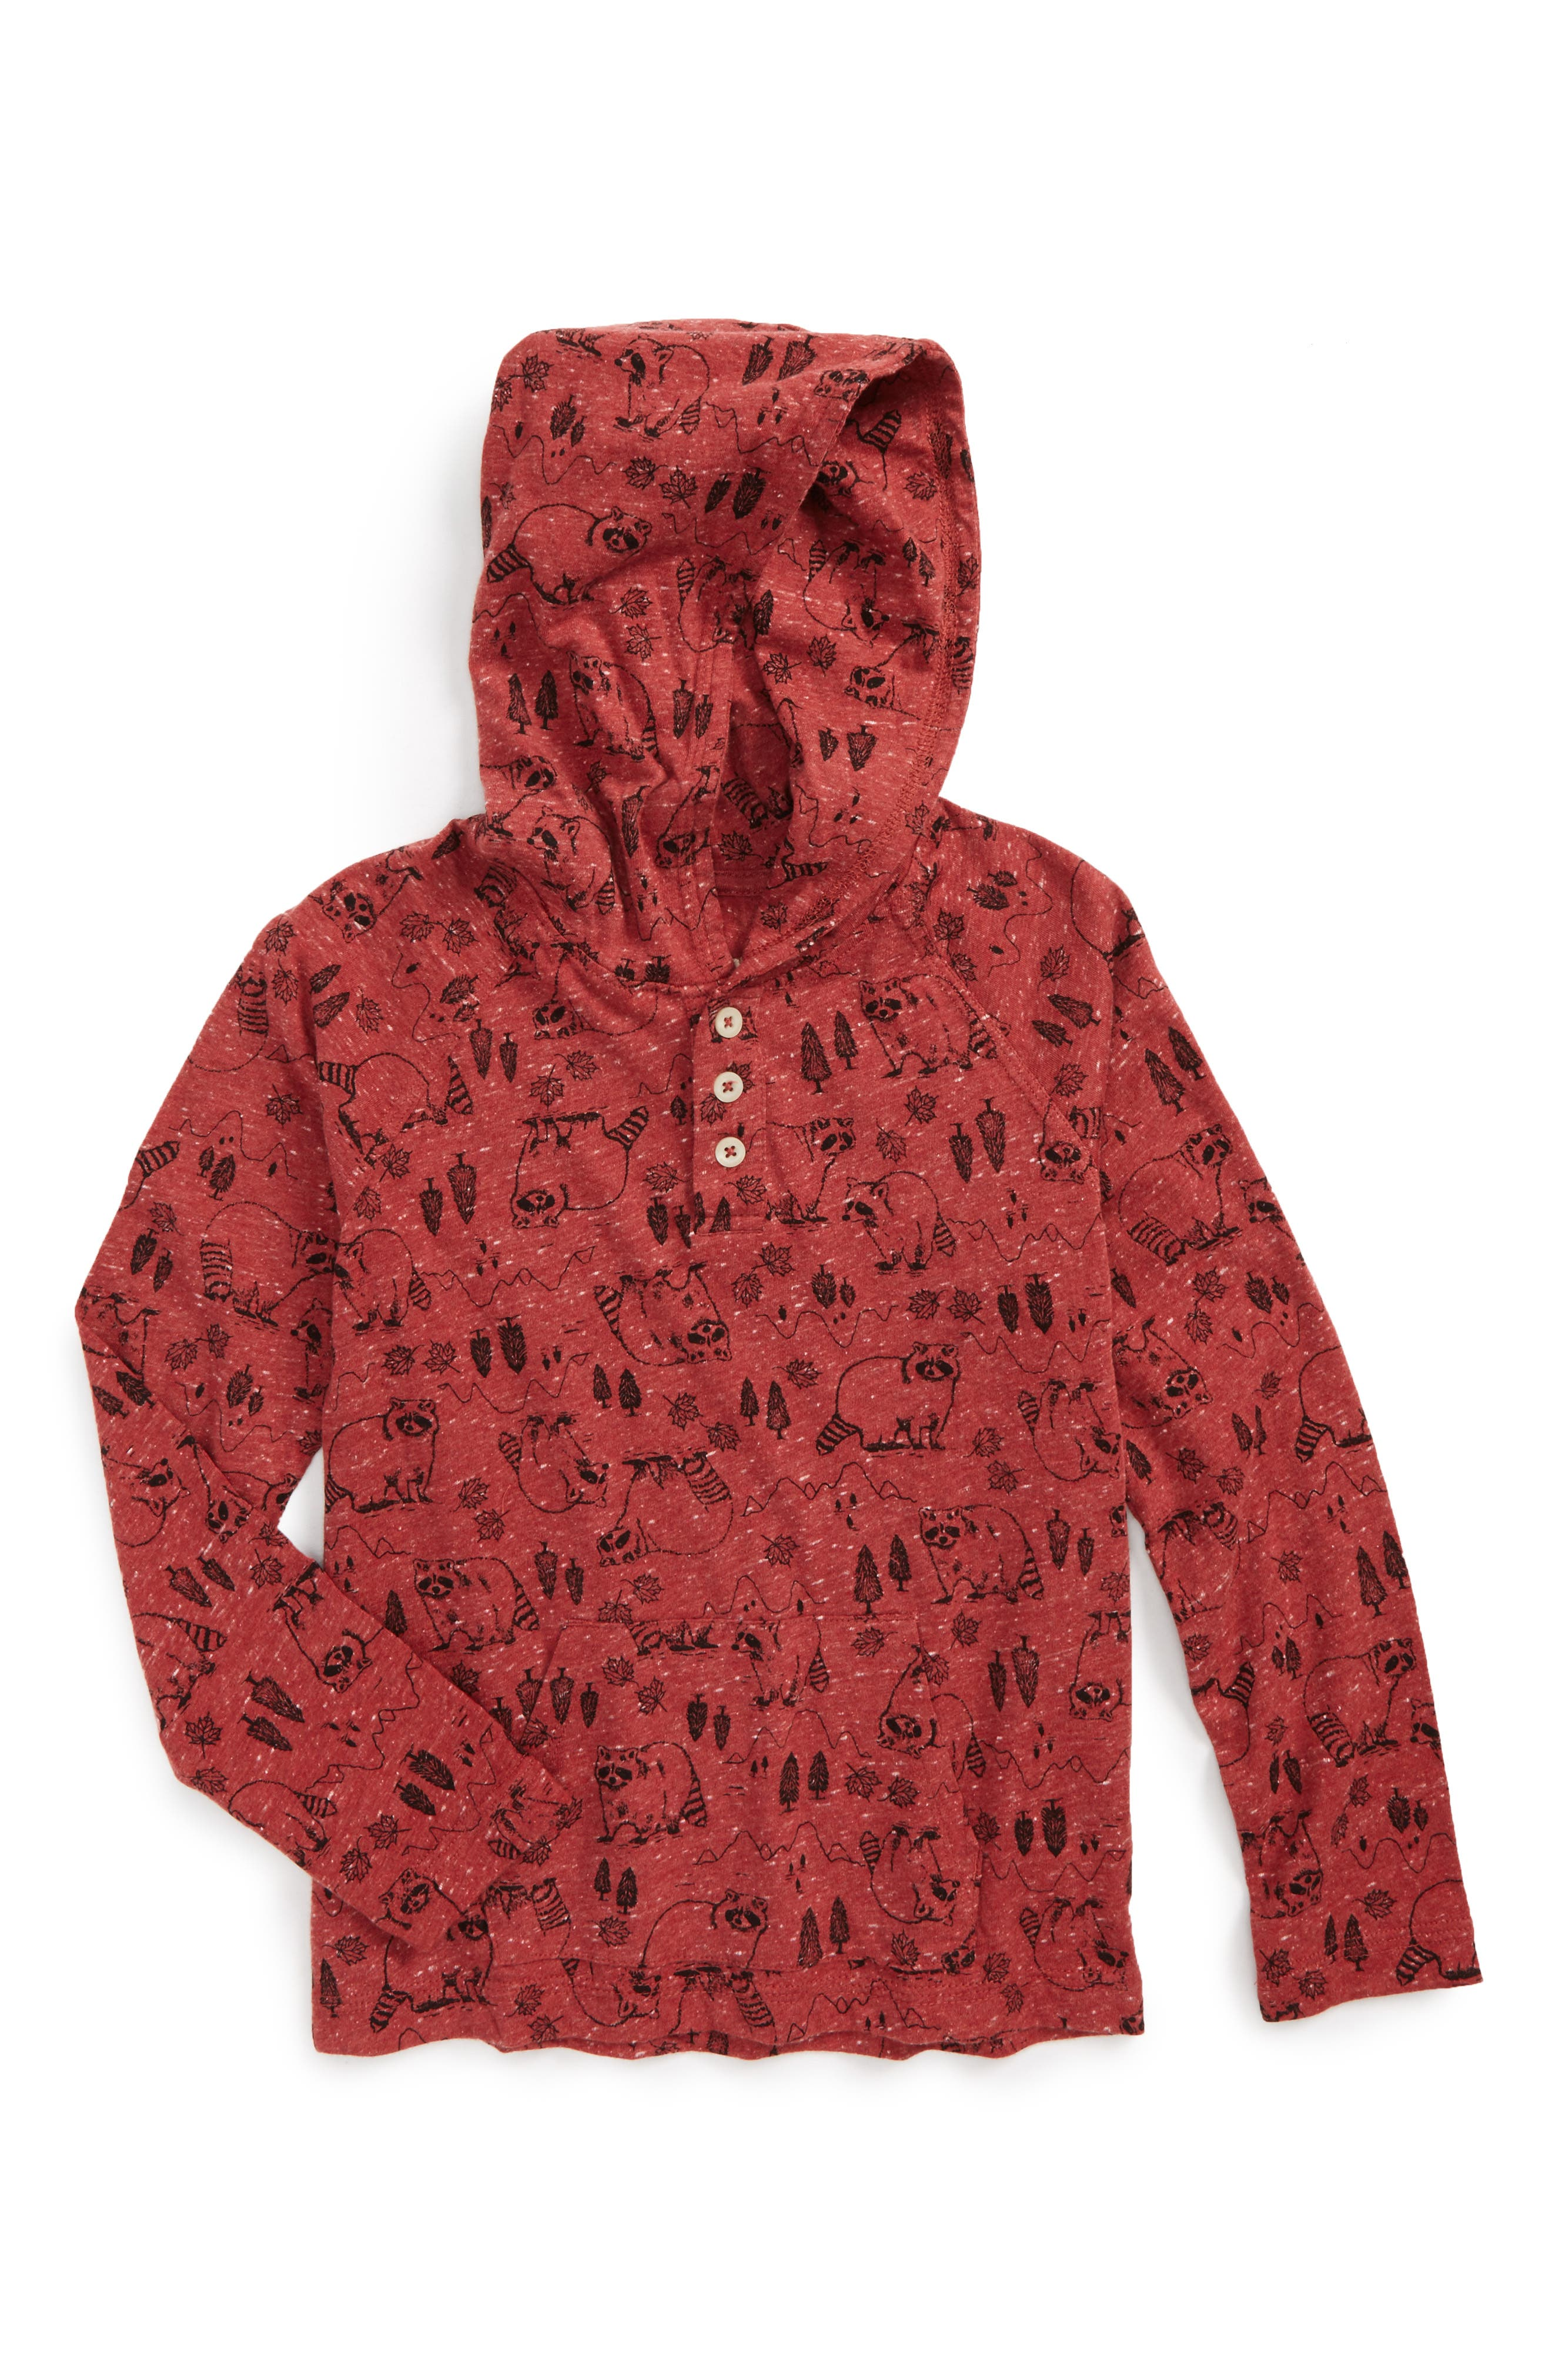 Main Image - Tucker + Tate Woodland Print Henley Hoodie (Toddler Boys & Little Boys)